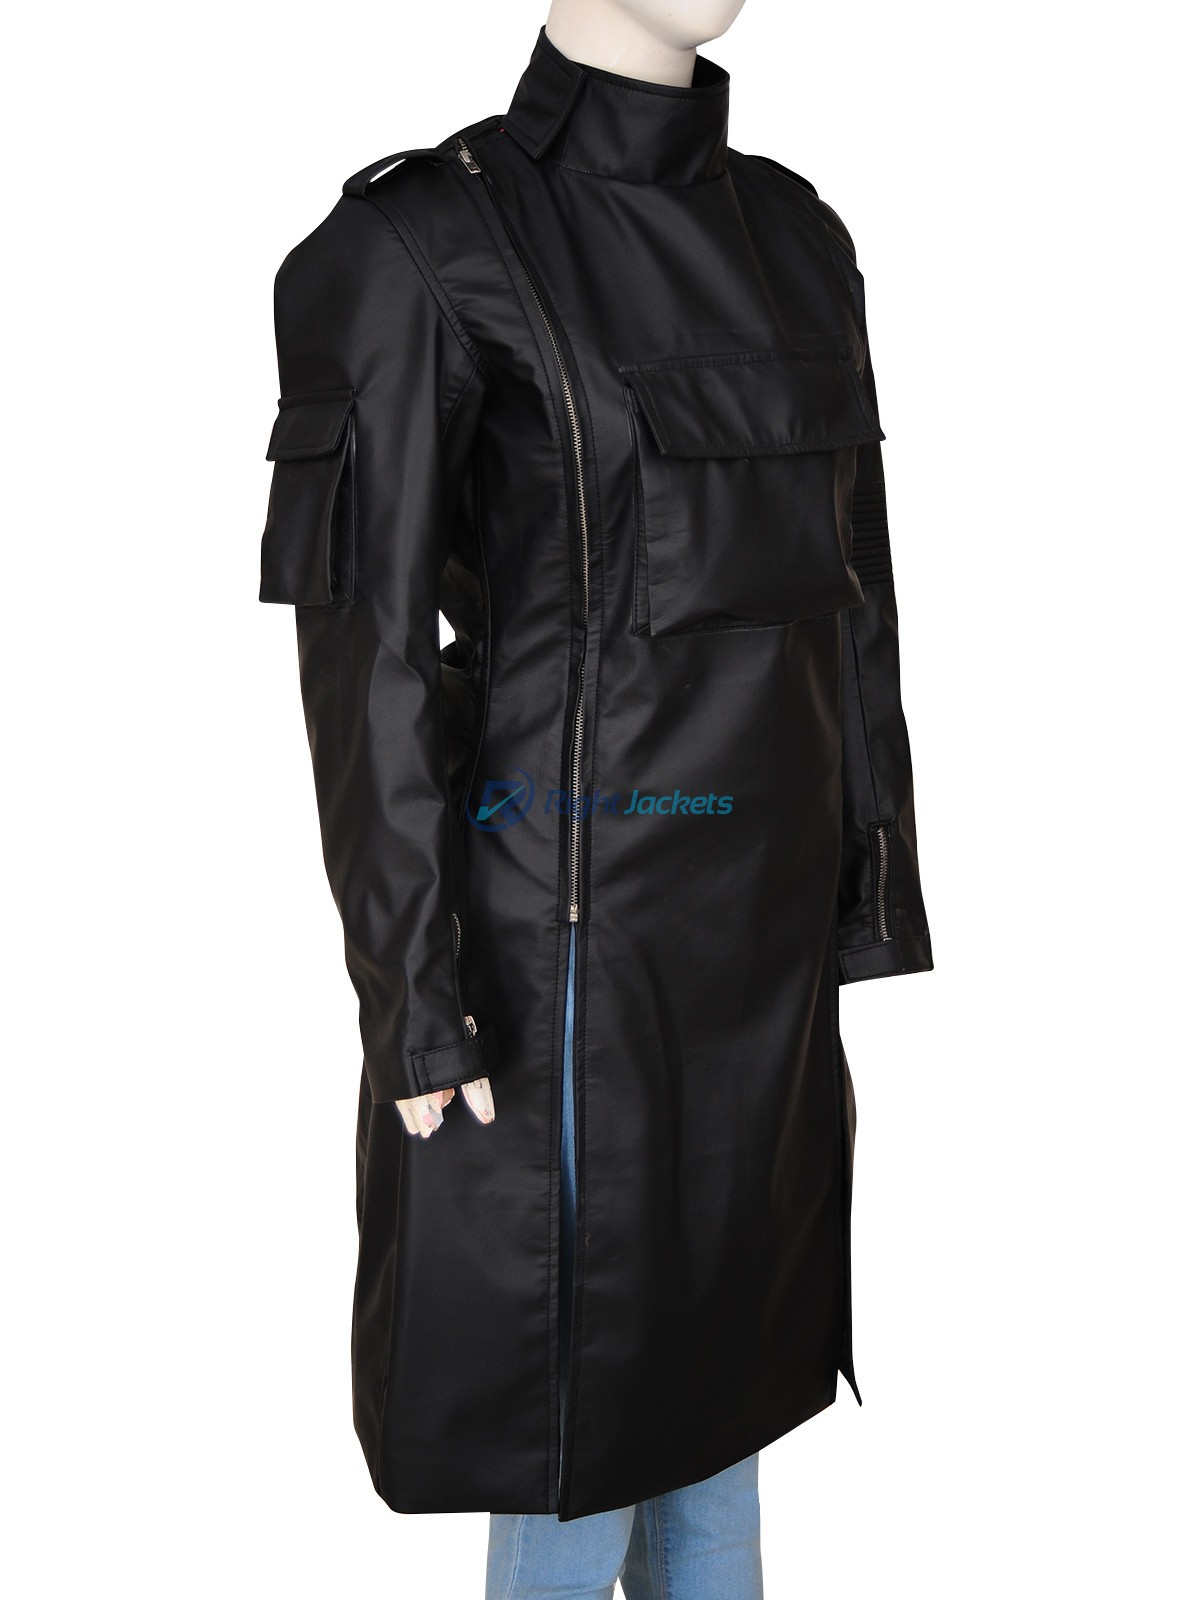 Scarlett Johansson Ghost In The Shell Major Costume Coat Right Jackets